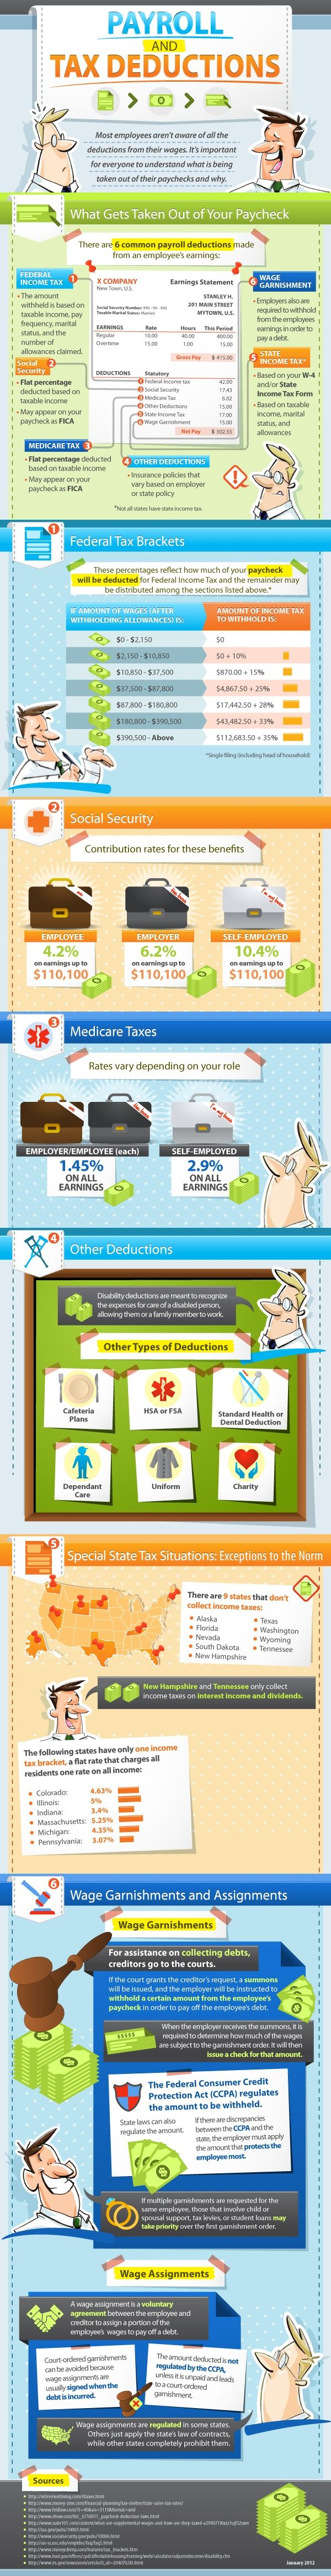 Payroll and tax deductions infographic taxtime income tax for Tax deductions for home improvements